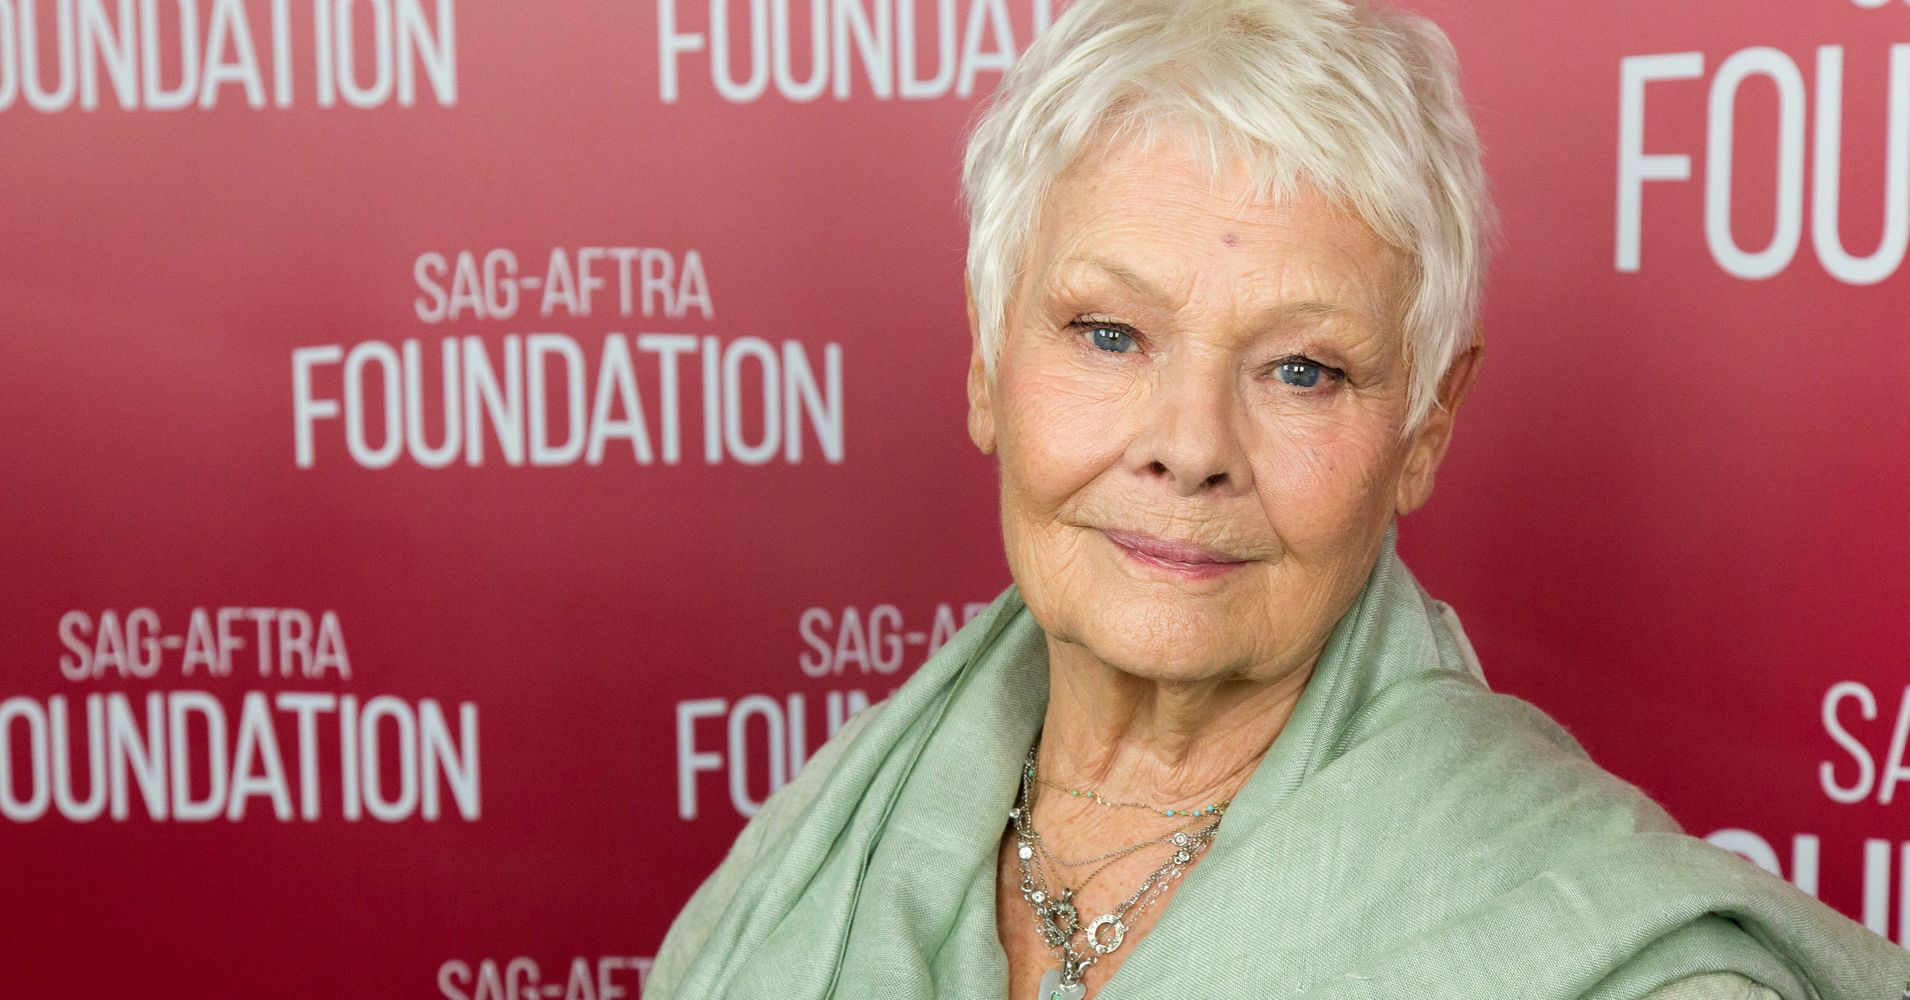 Judi Dench Was Up For 'Leading Roll' SAG Award, And Twitter Rolled With It